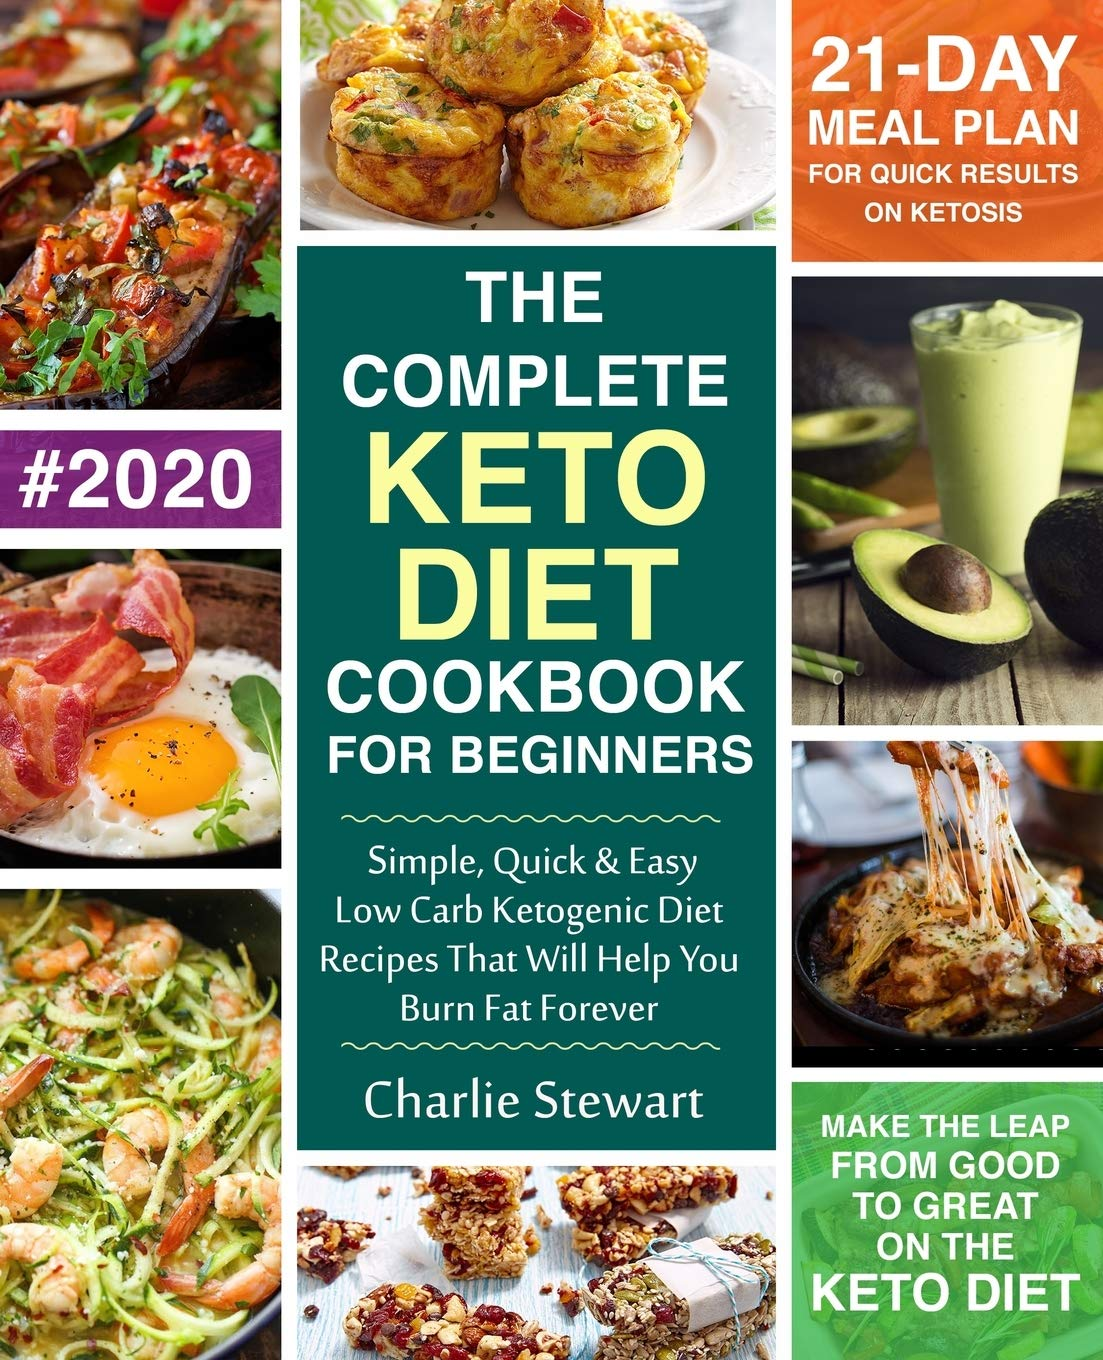 The Complete Keto Diet Cookbook For Beginners Simple Quick And Easy Low Carb Ketogenic Diet Recipes That Will Help You Burn Fat Forever Stewart Charlie 9781980866817 Amazon Com Books